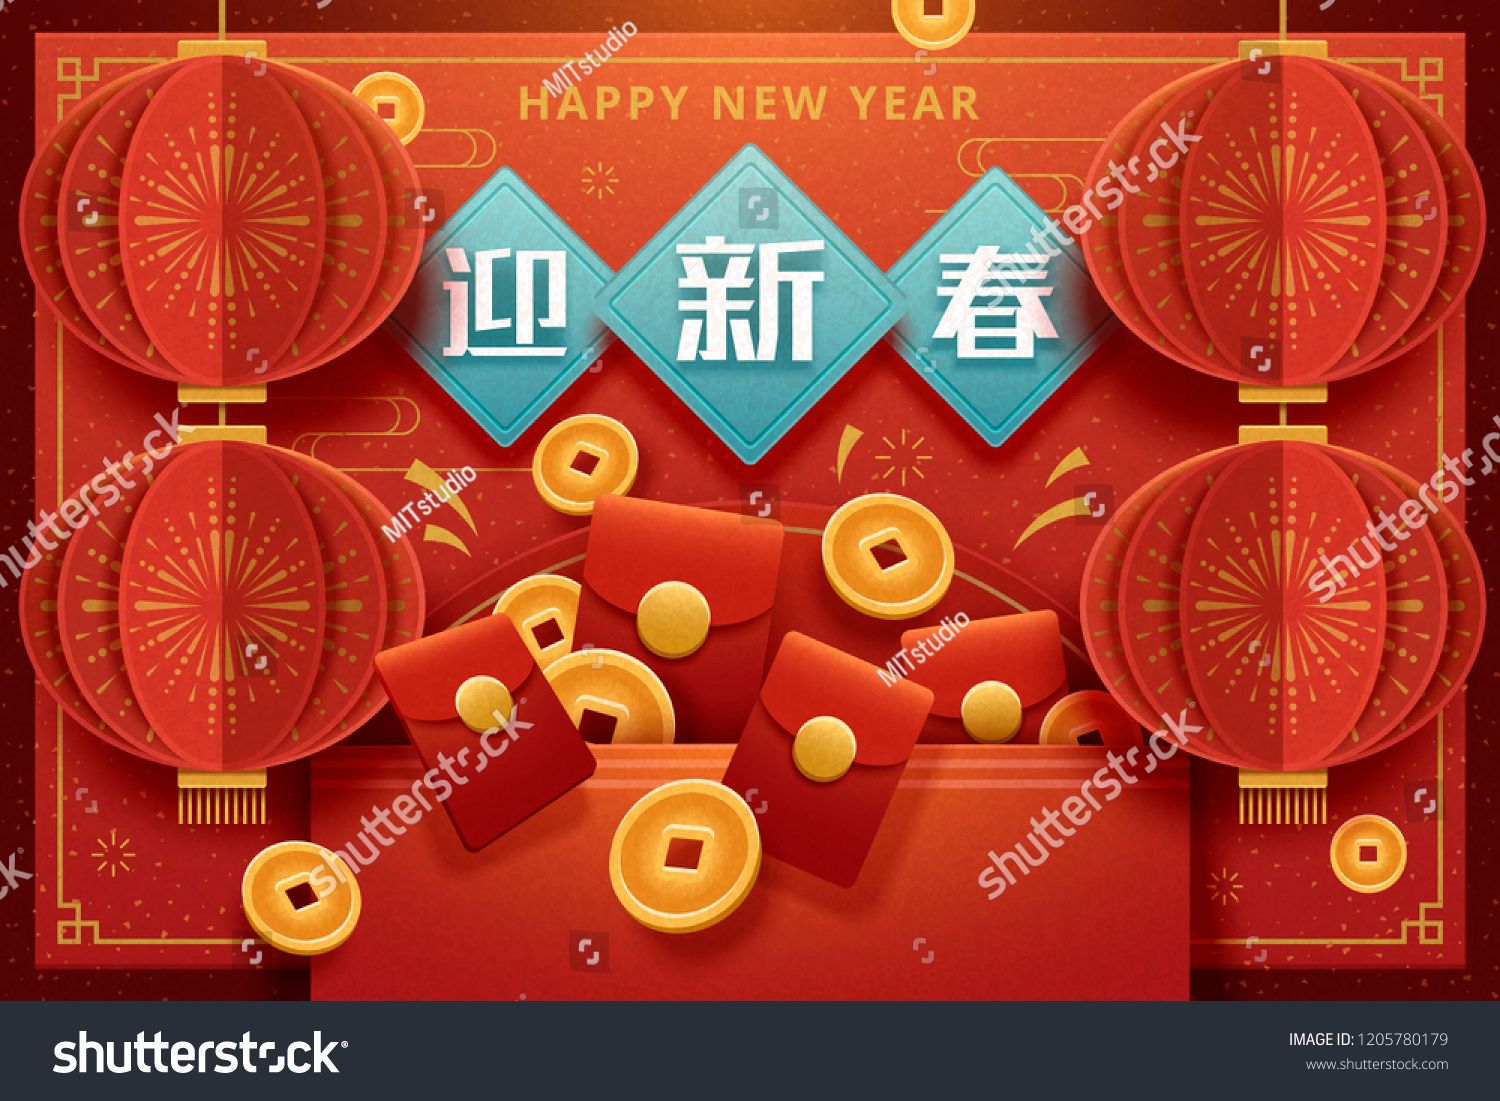 Happy new year greeting poster with hanging lanterns, red